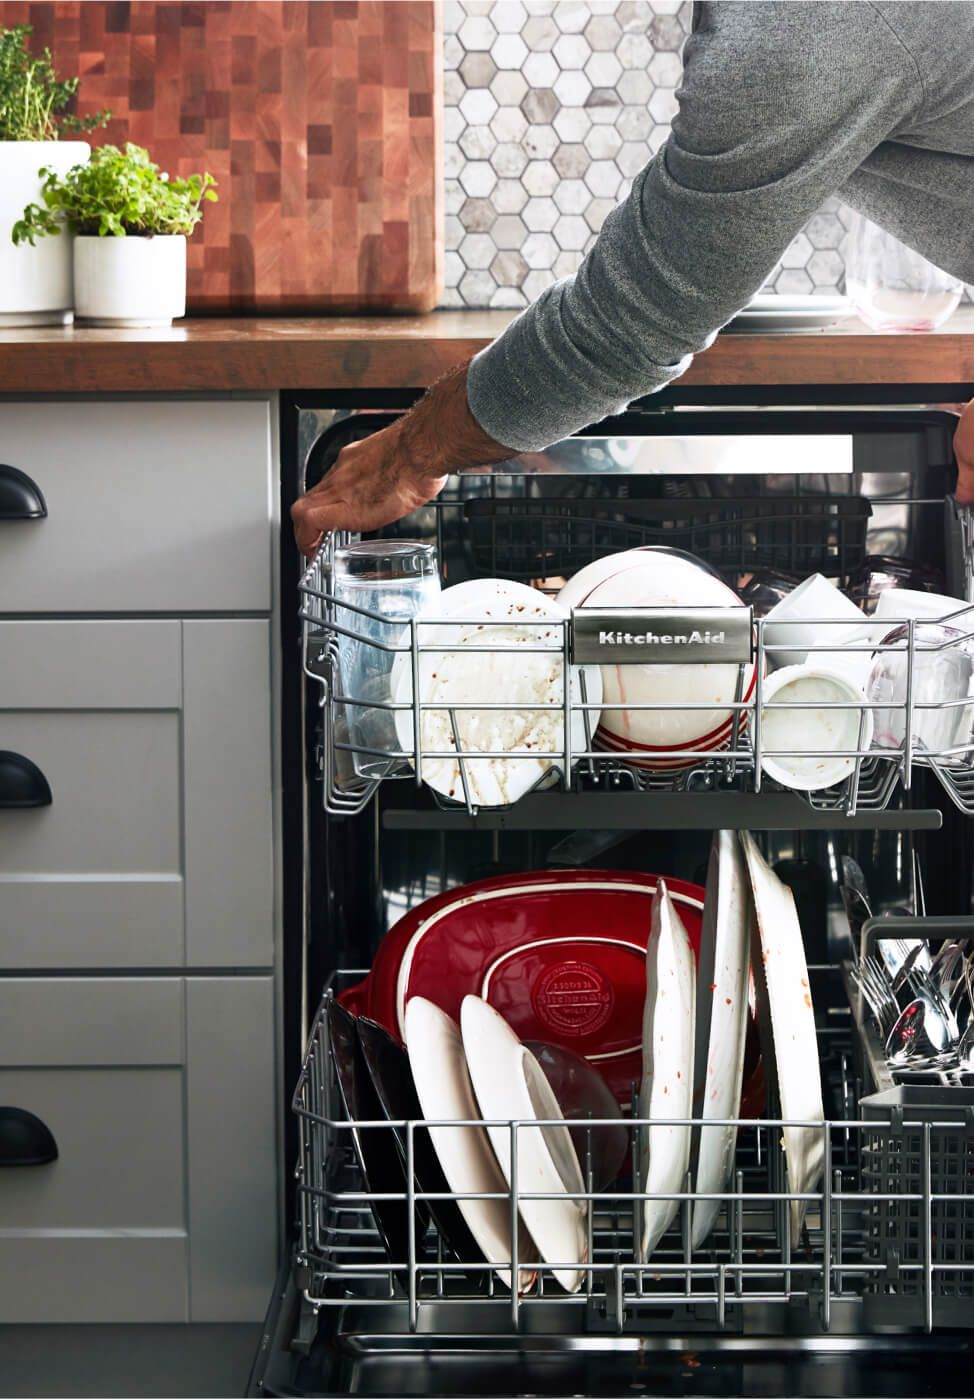 On the left, an open dishwasher viewed from above — packed with the aftermath of good cooking and a great meal.